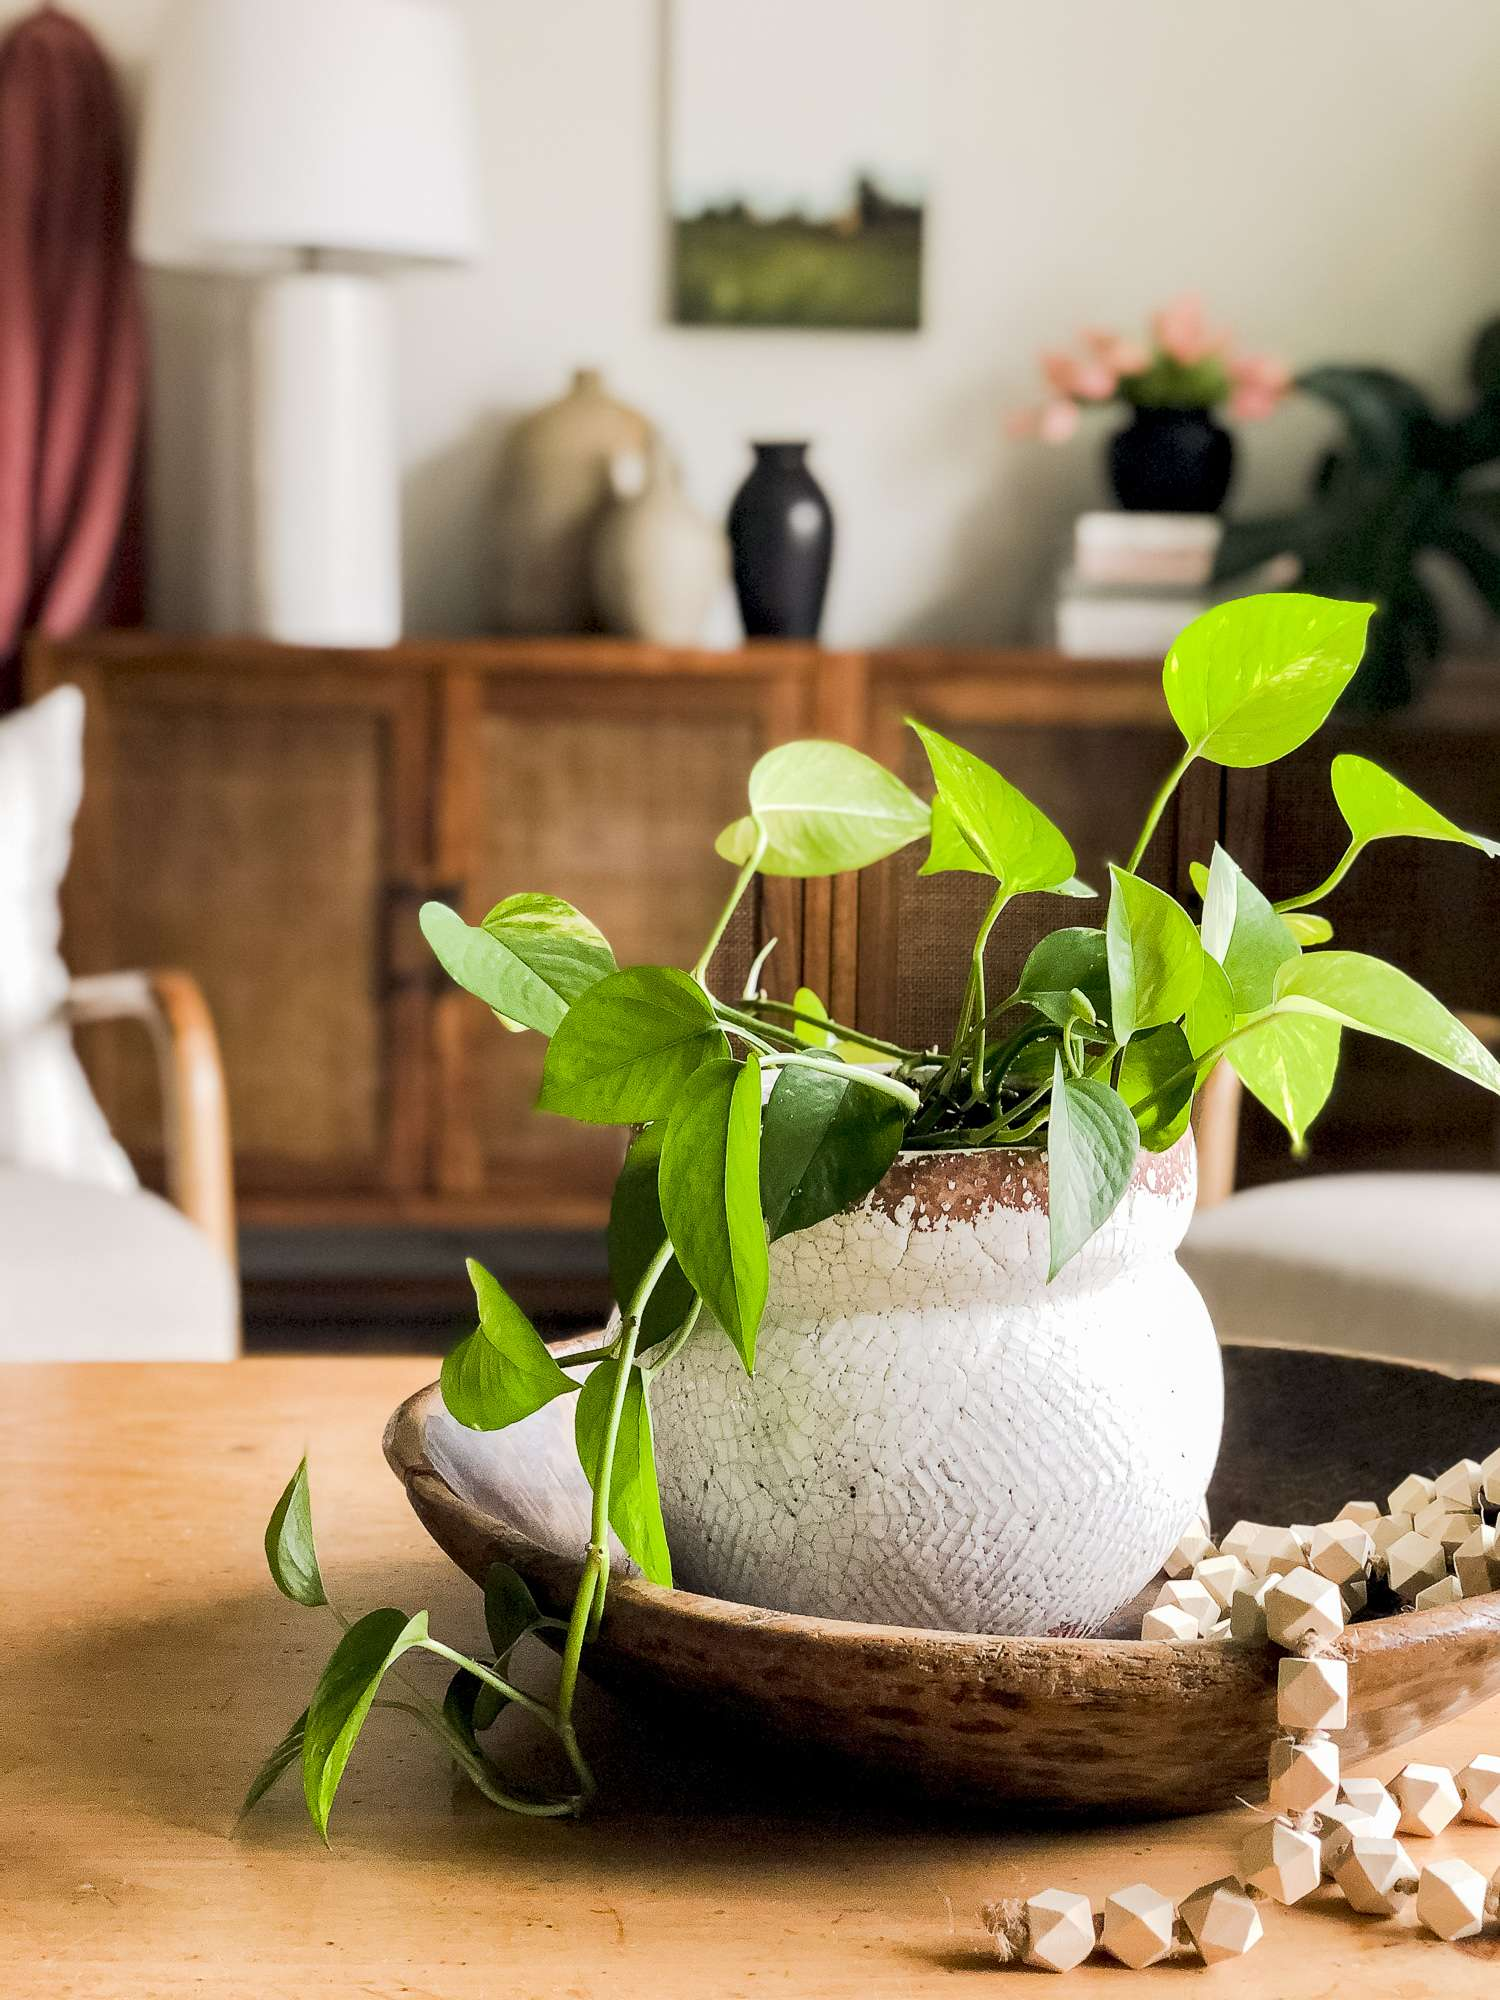 Coffee table plant decor